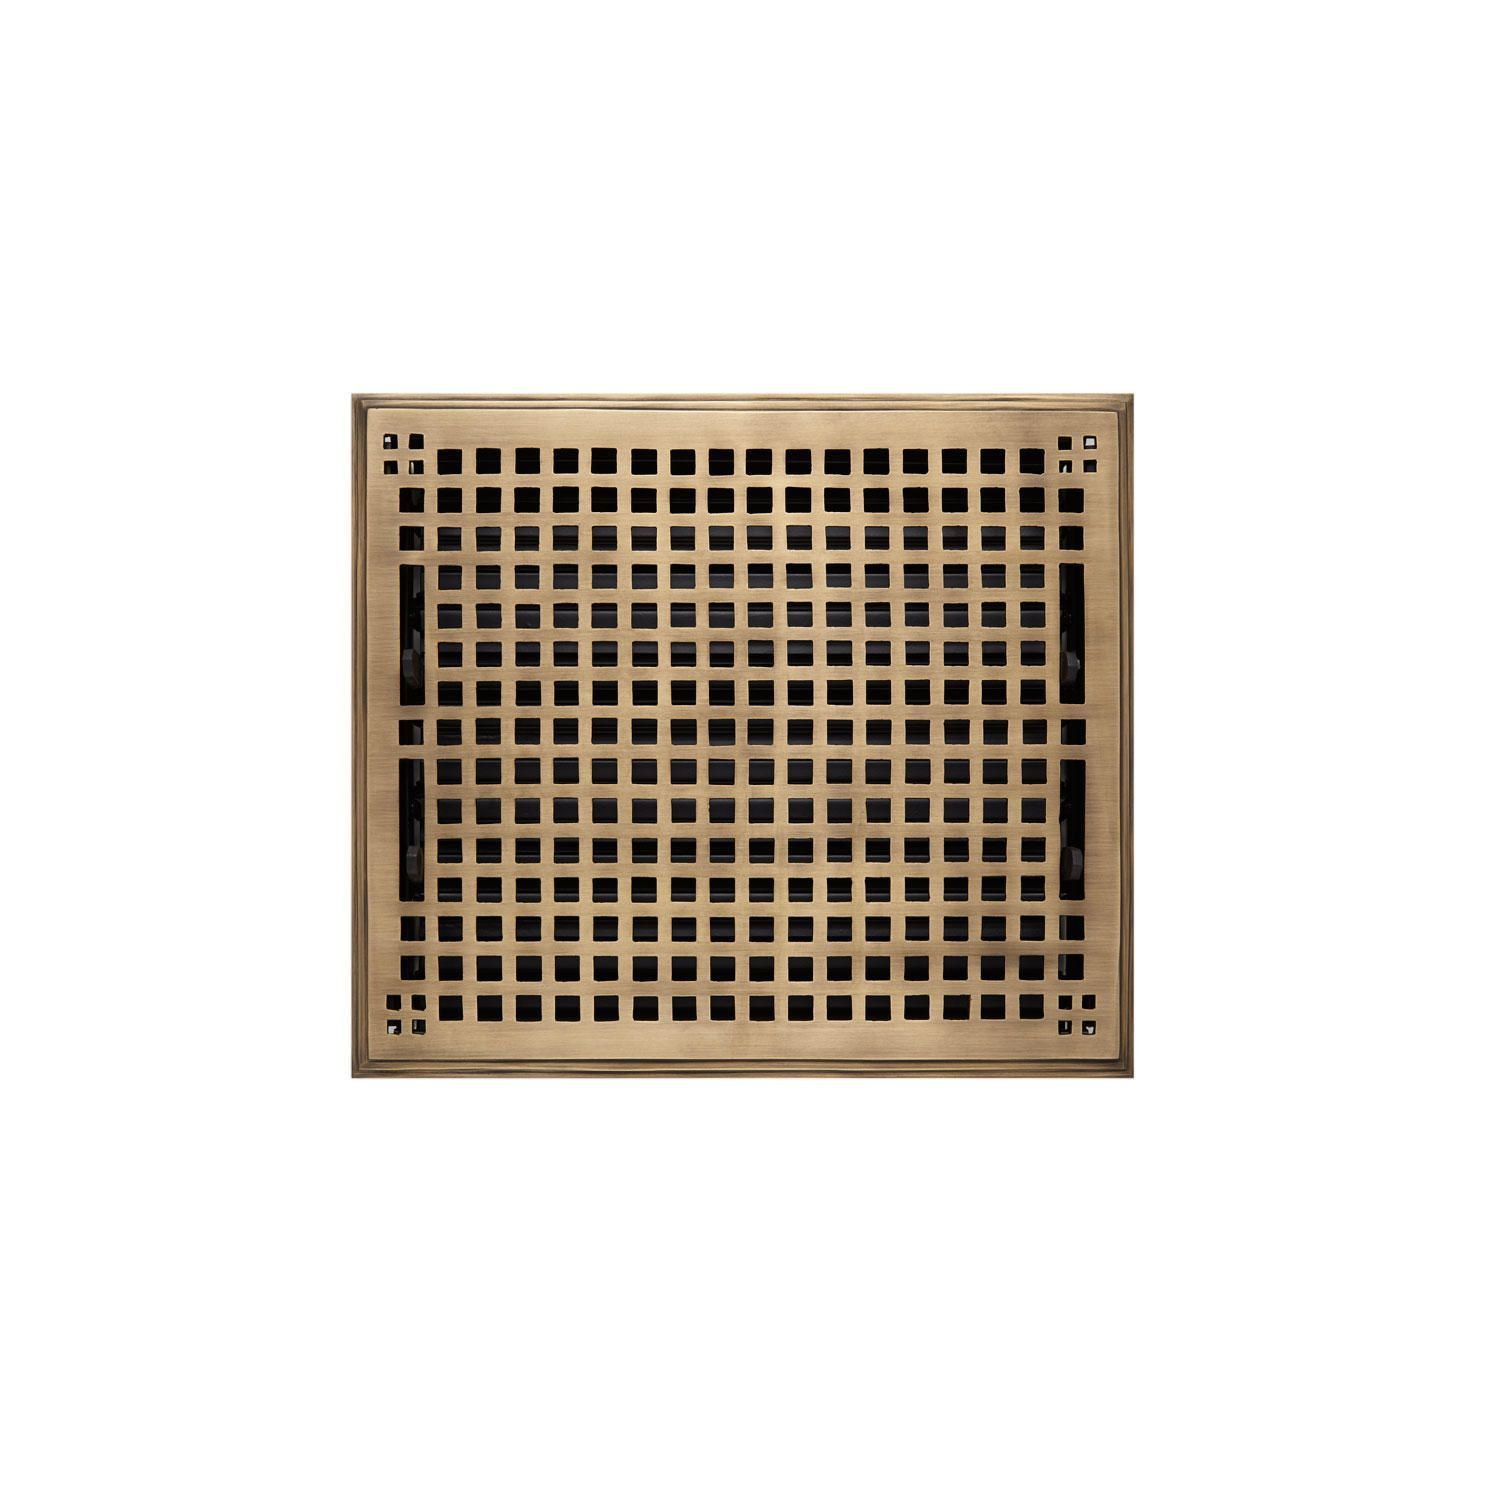 Mission Brass Floor Register Antique Brass 10 X 12 11 1 2 X 13 3 8 Overall Wall Registers Wall Vents Wall Vent Covers